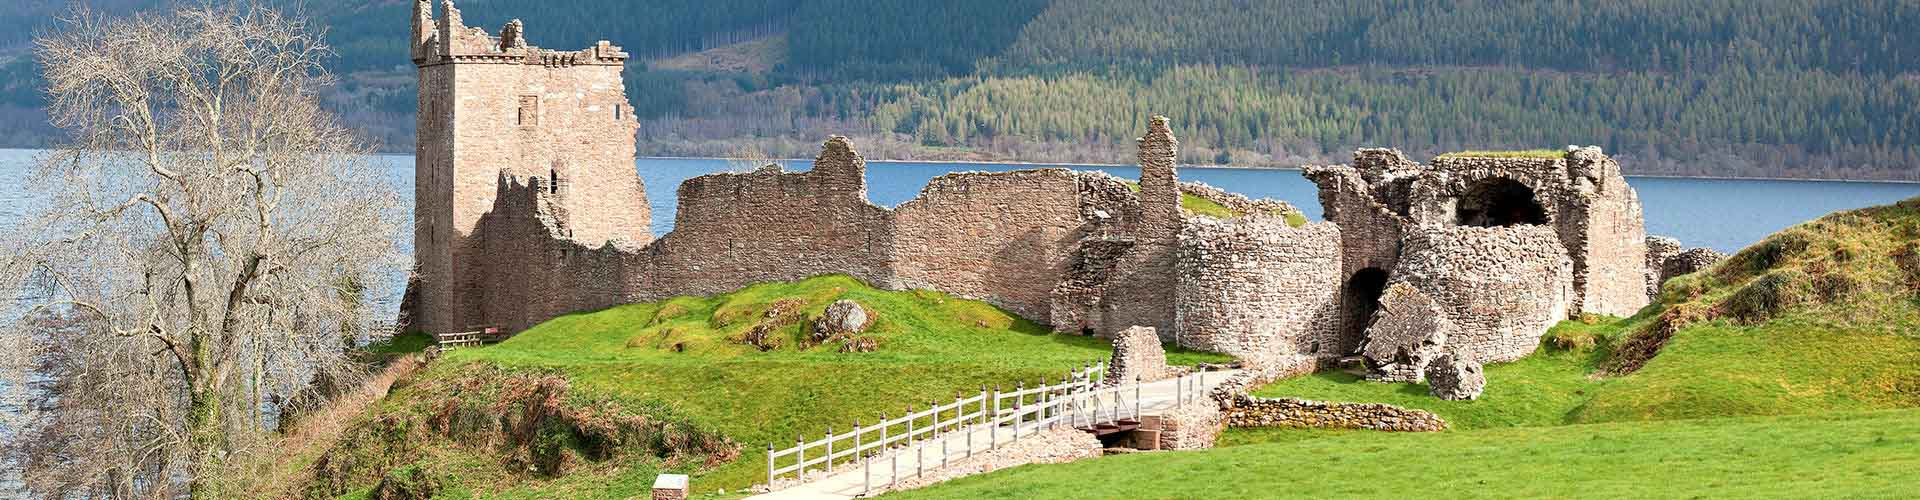 Loch Ness – Hostels in Loch Ness. Maps for Loch Ness, Photos and Reviews for each hostel in Loch Ness.